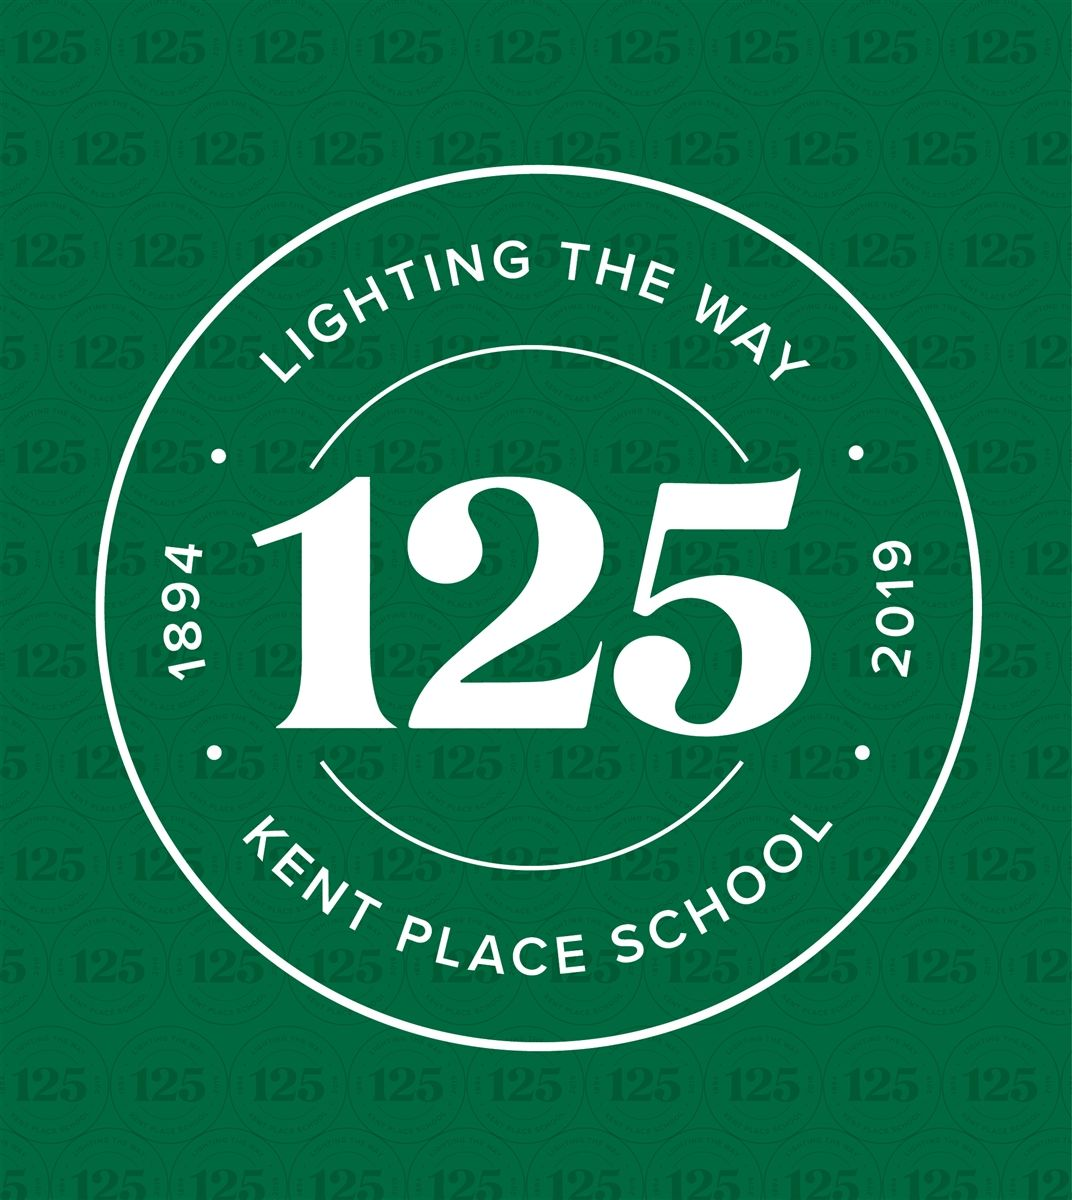 Celebrating 125 years of Kent Place School